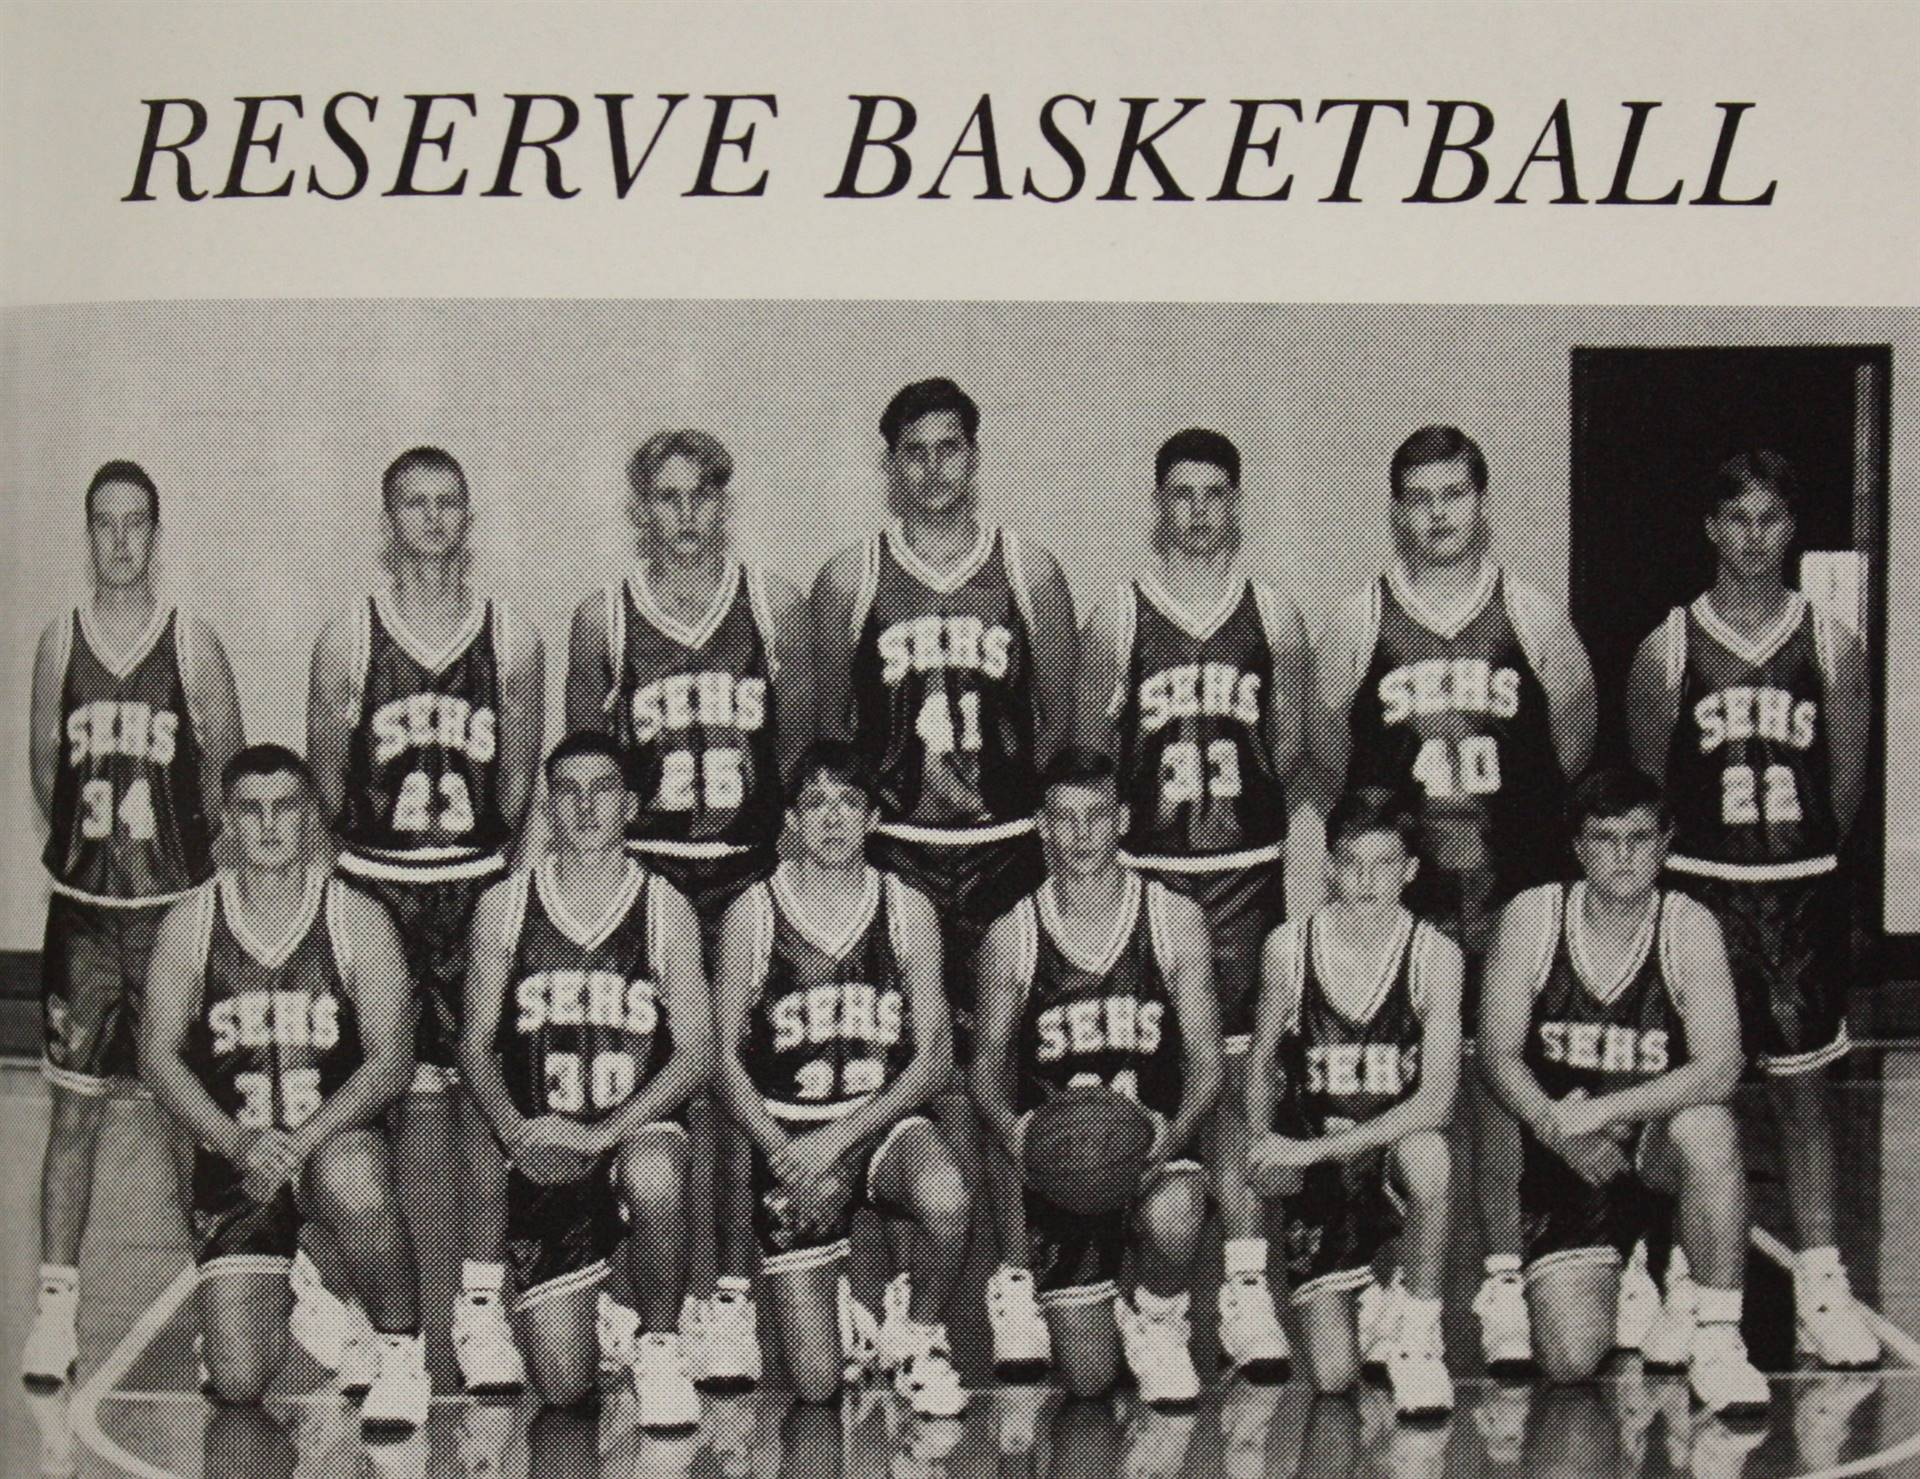 1995 Reserve Basketball